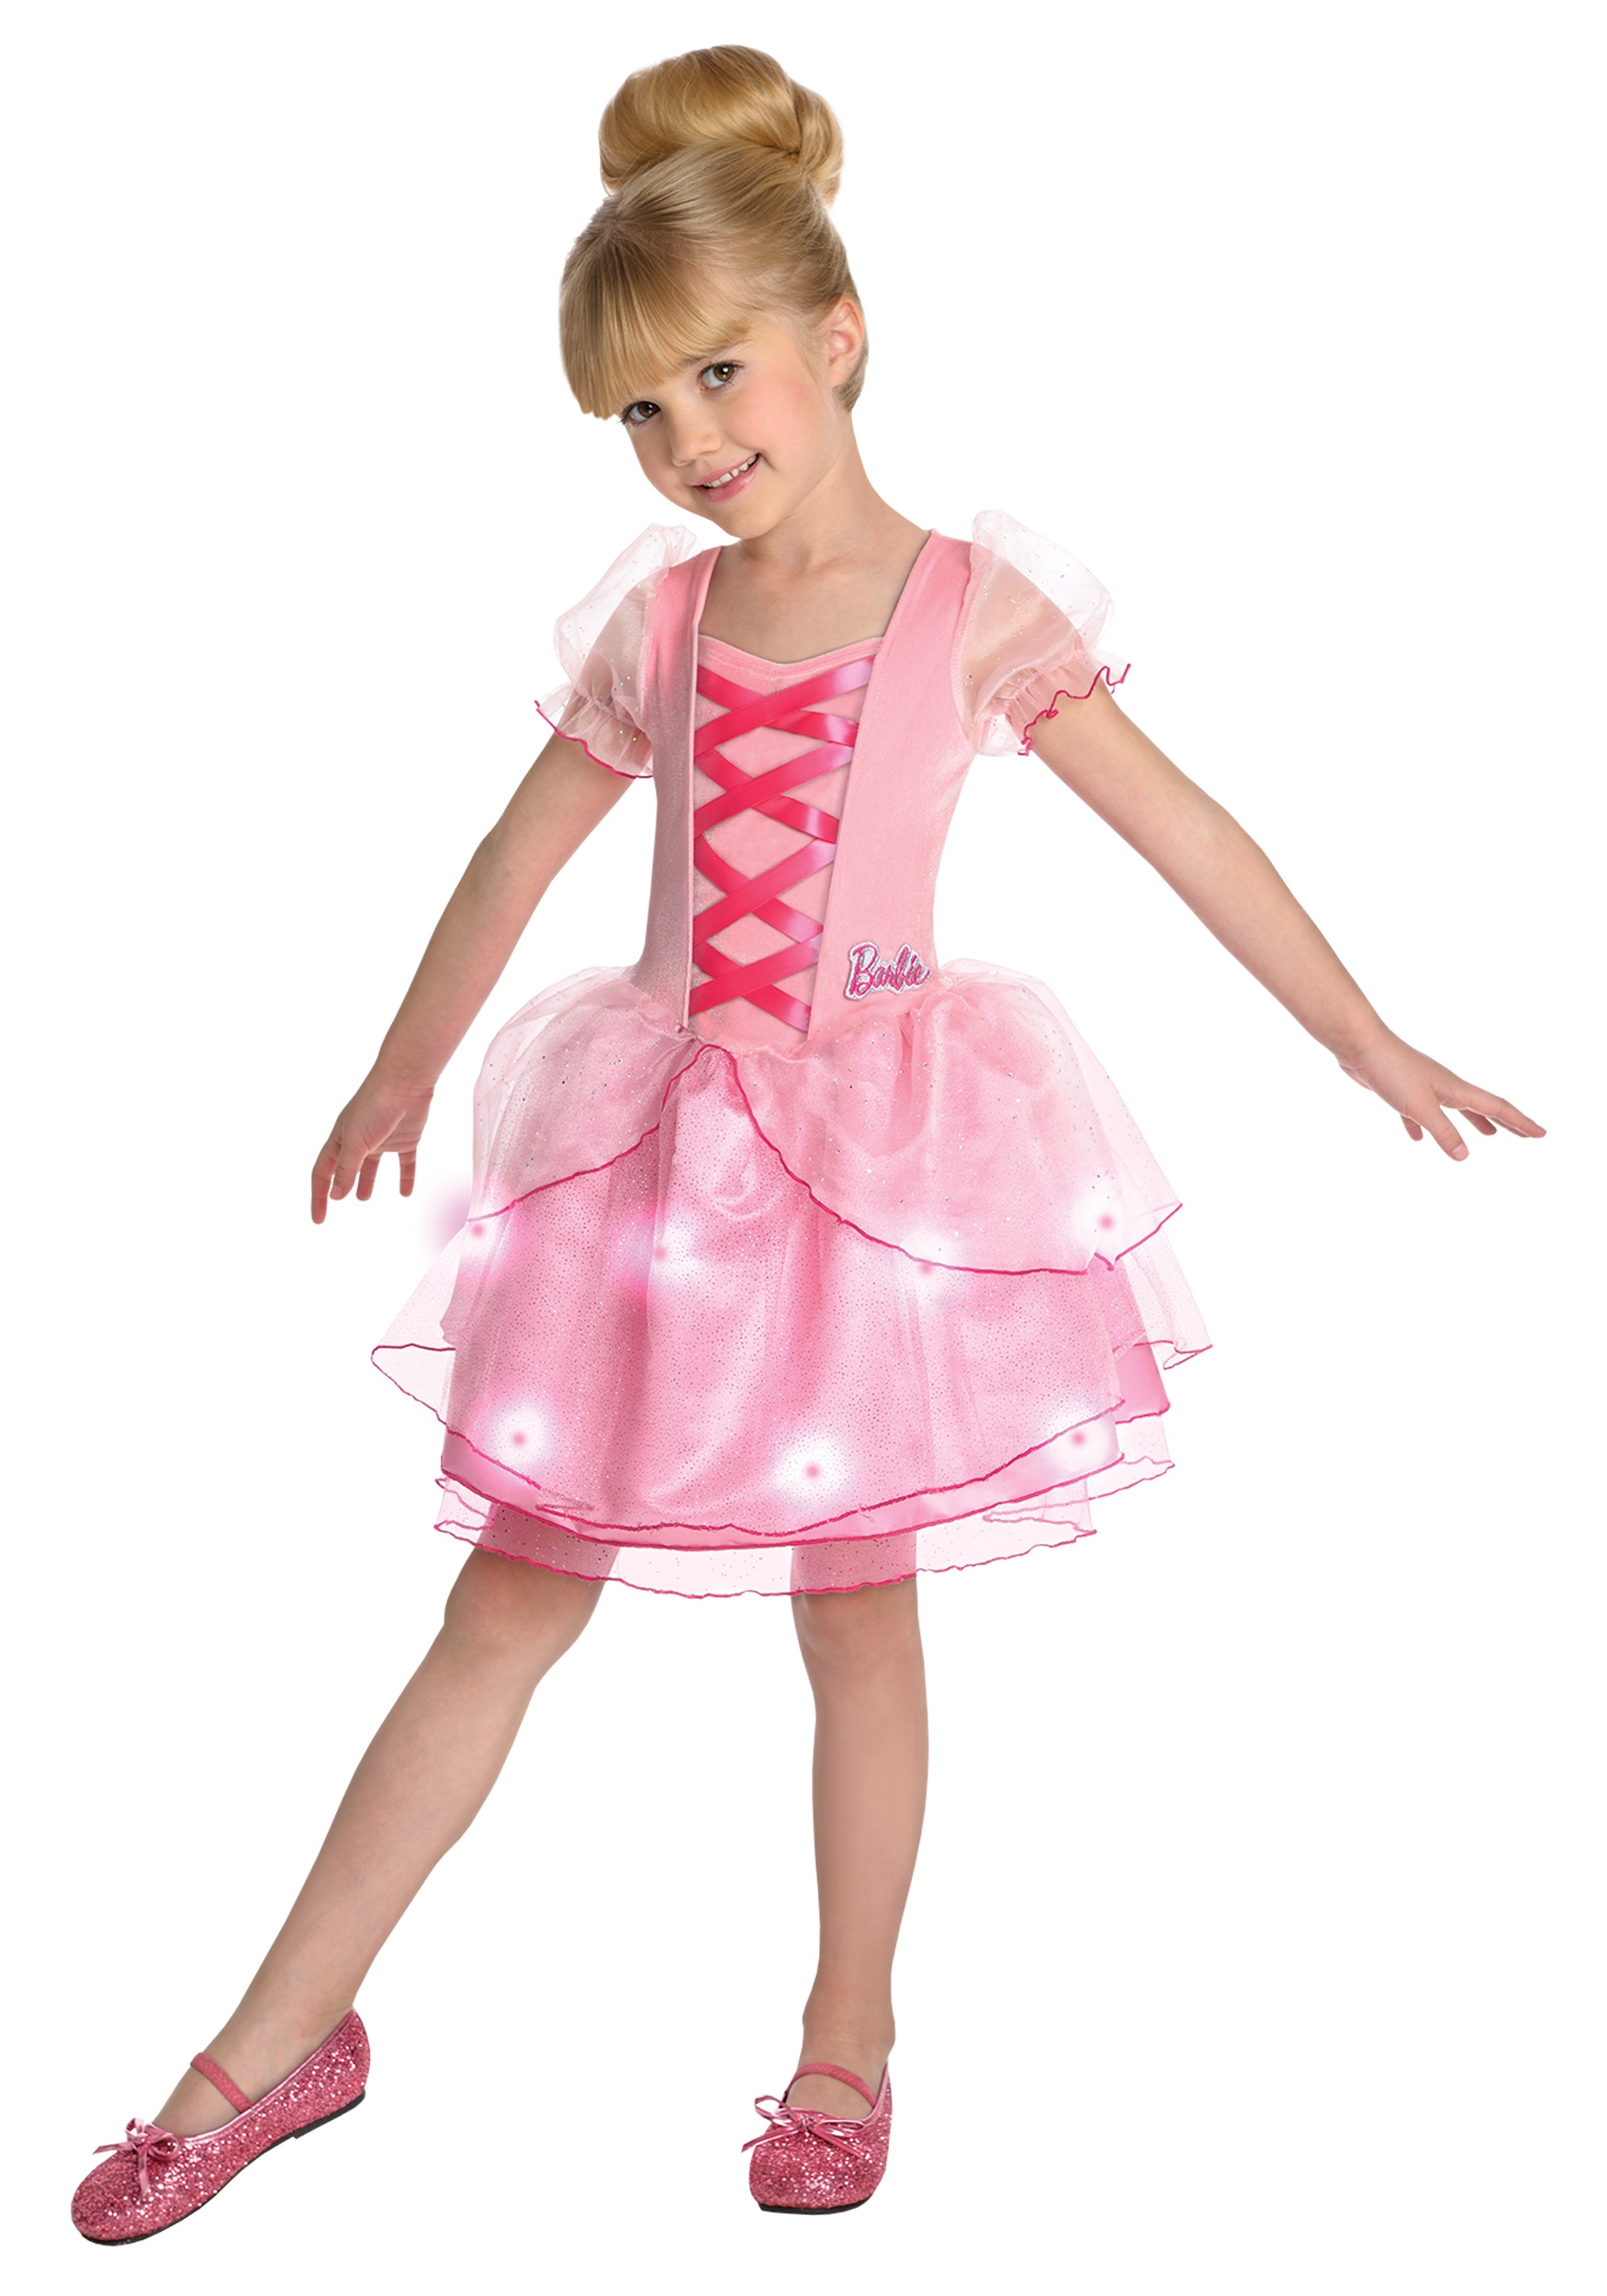 Girls Ballerina Barbie Costume  sc 1 st  Halloween Costumes & Girls Ballerina Barbie Costume - Halloween Costumes